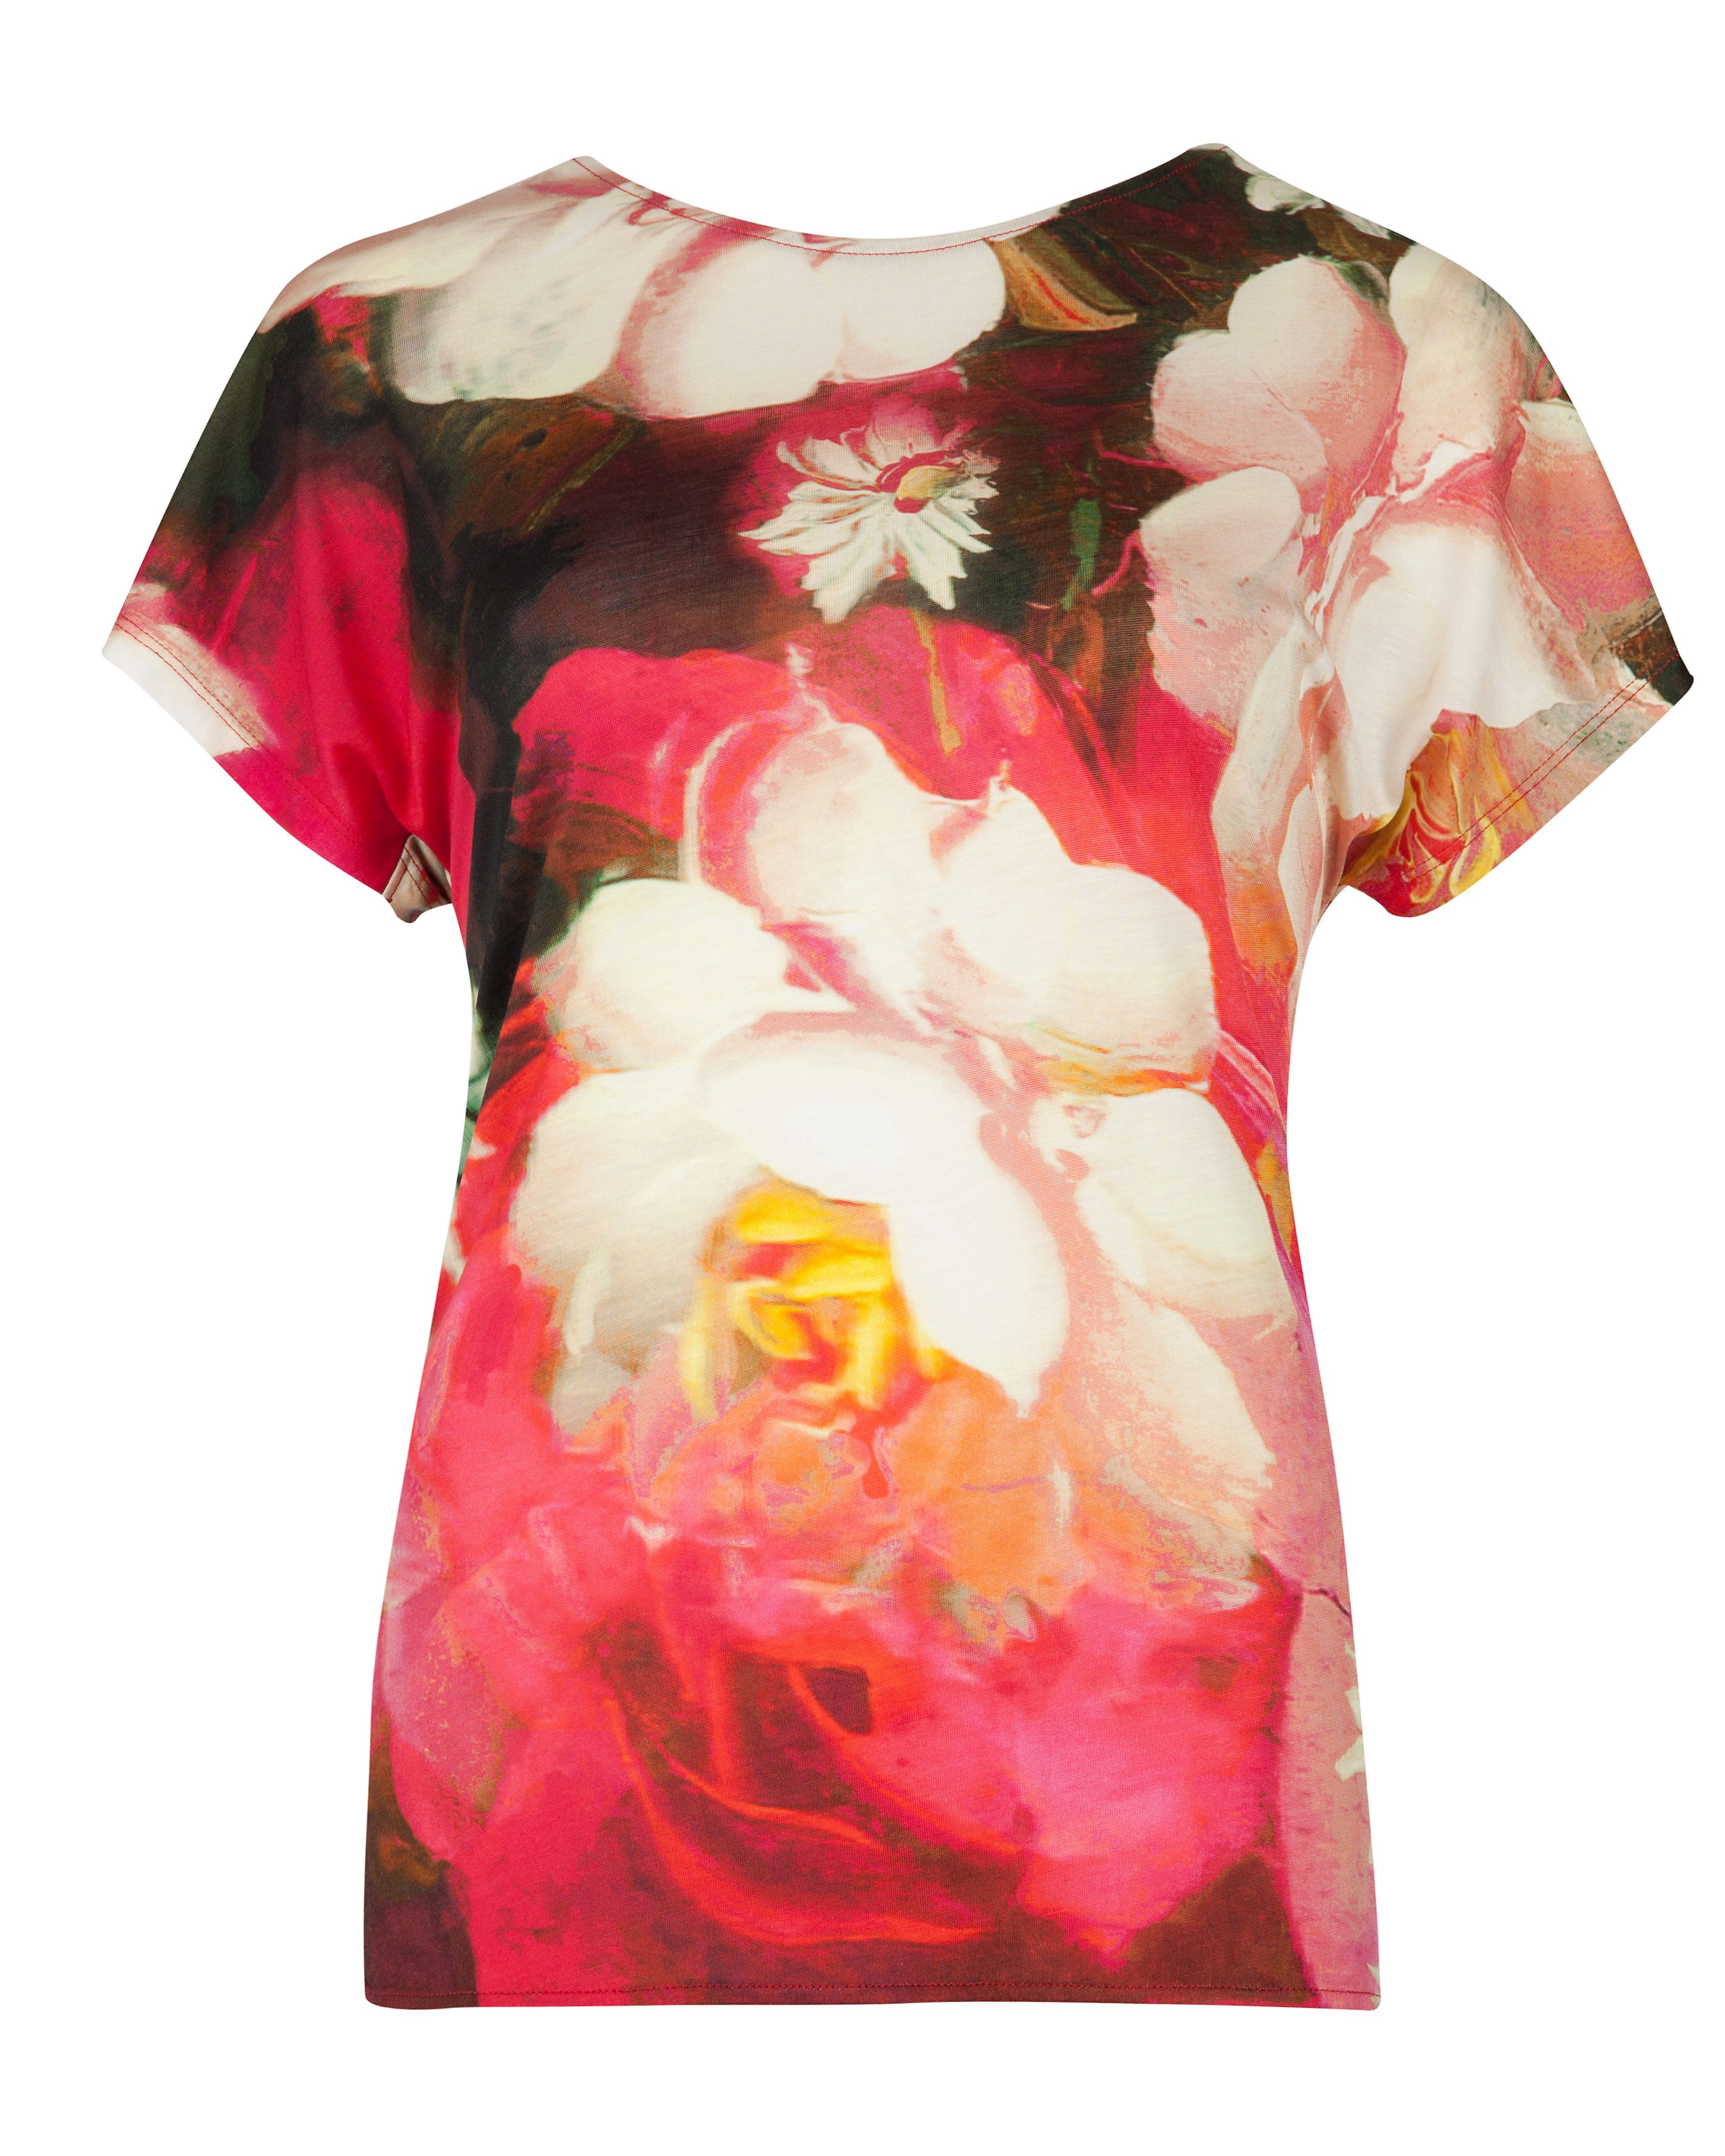 Chofa rose on canvas print top